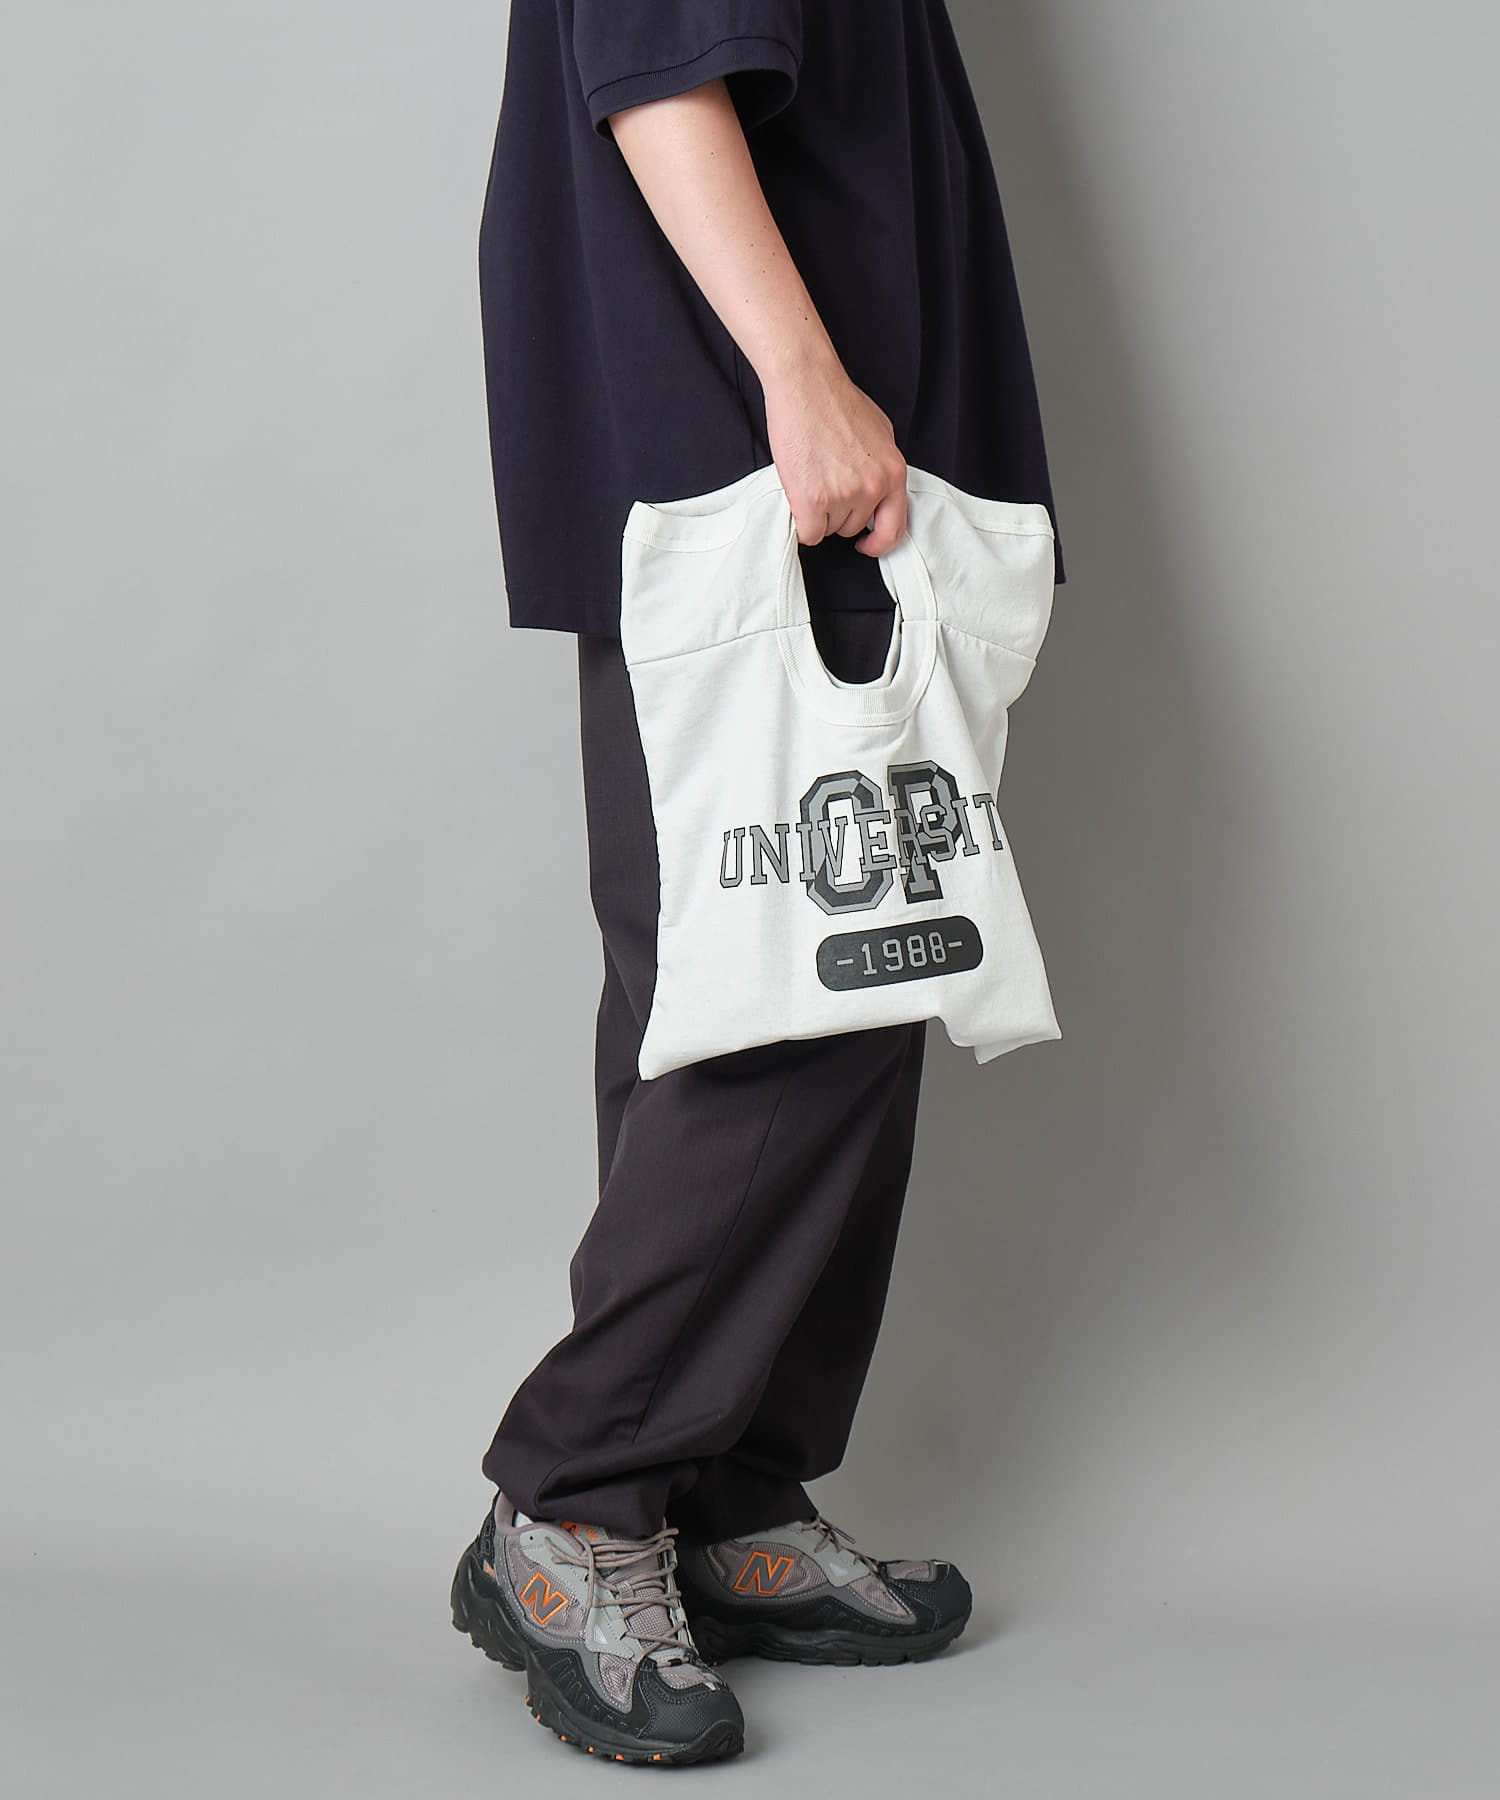 OUTLET(アウトレット) 【Ciaopanic】メッシュ切替カレッジプリントTシャツリメイク風トートバッグ